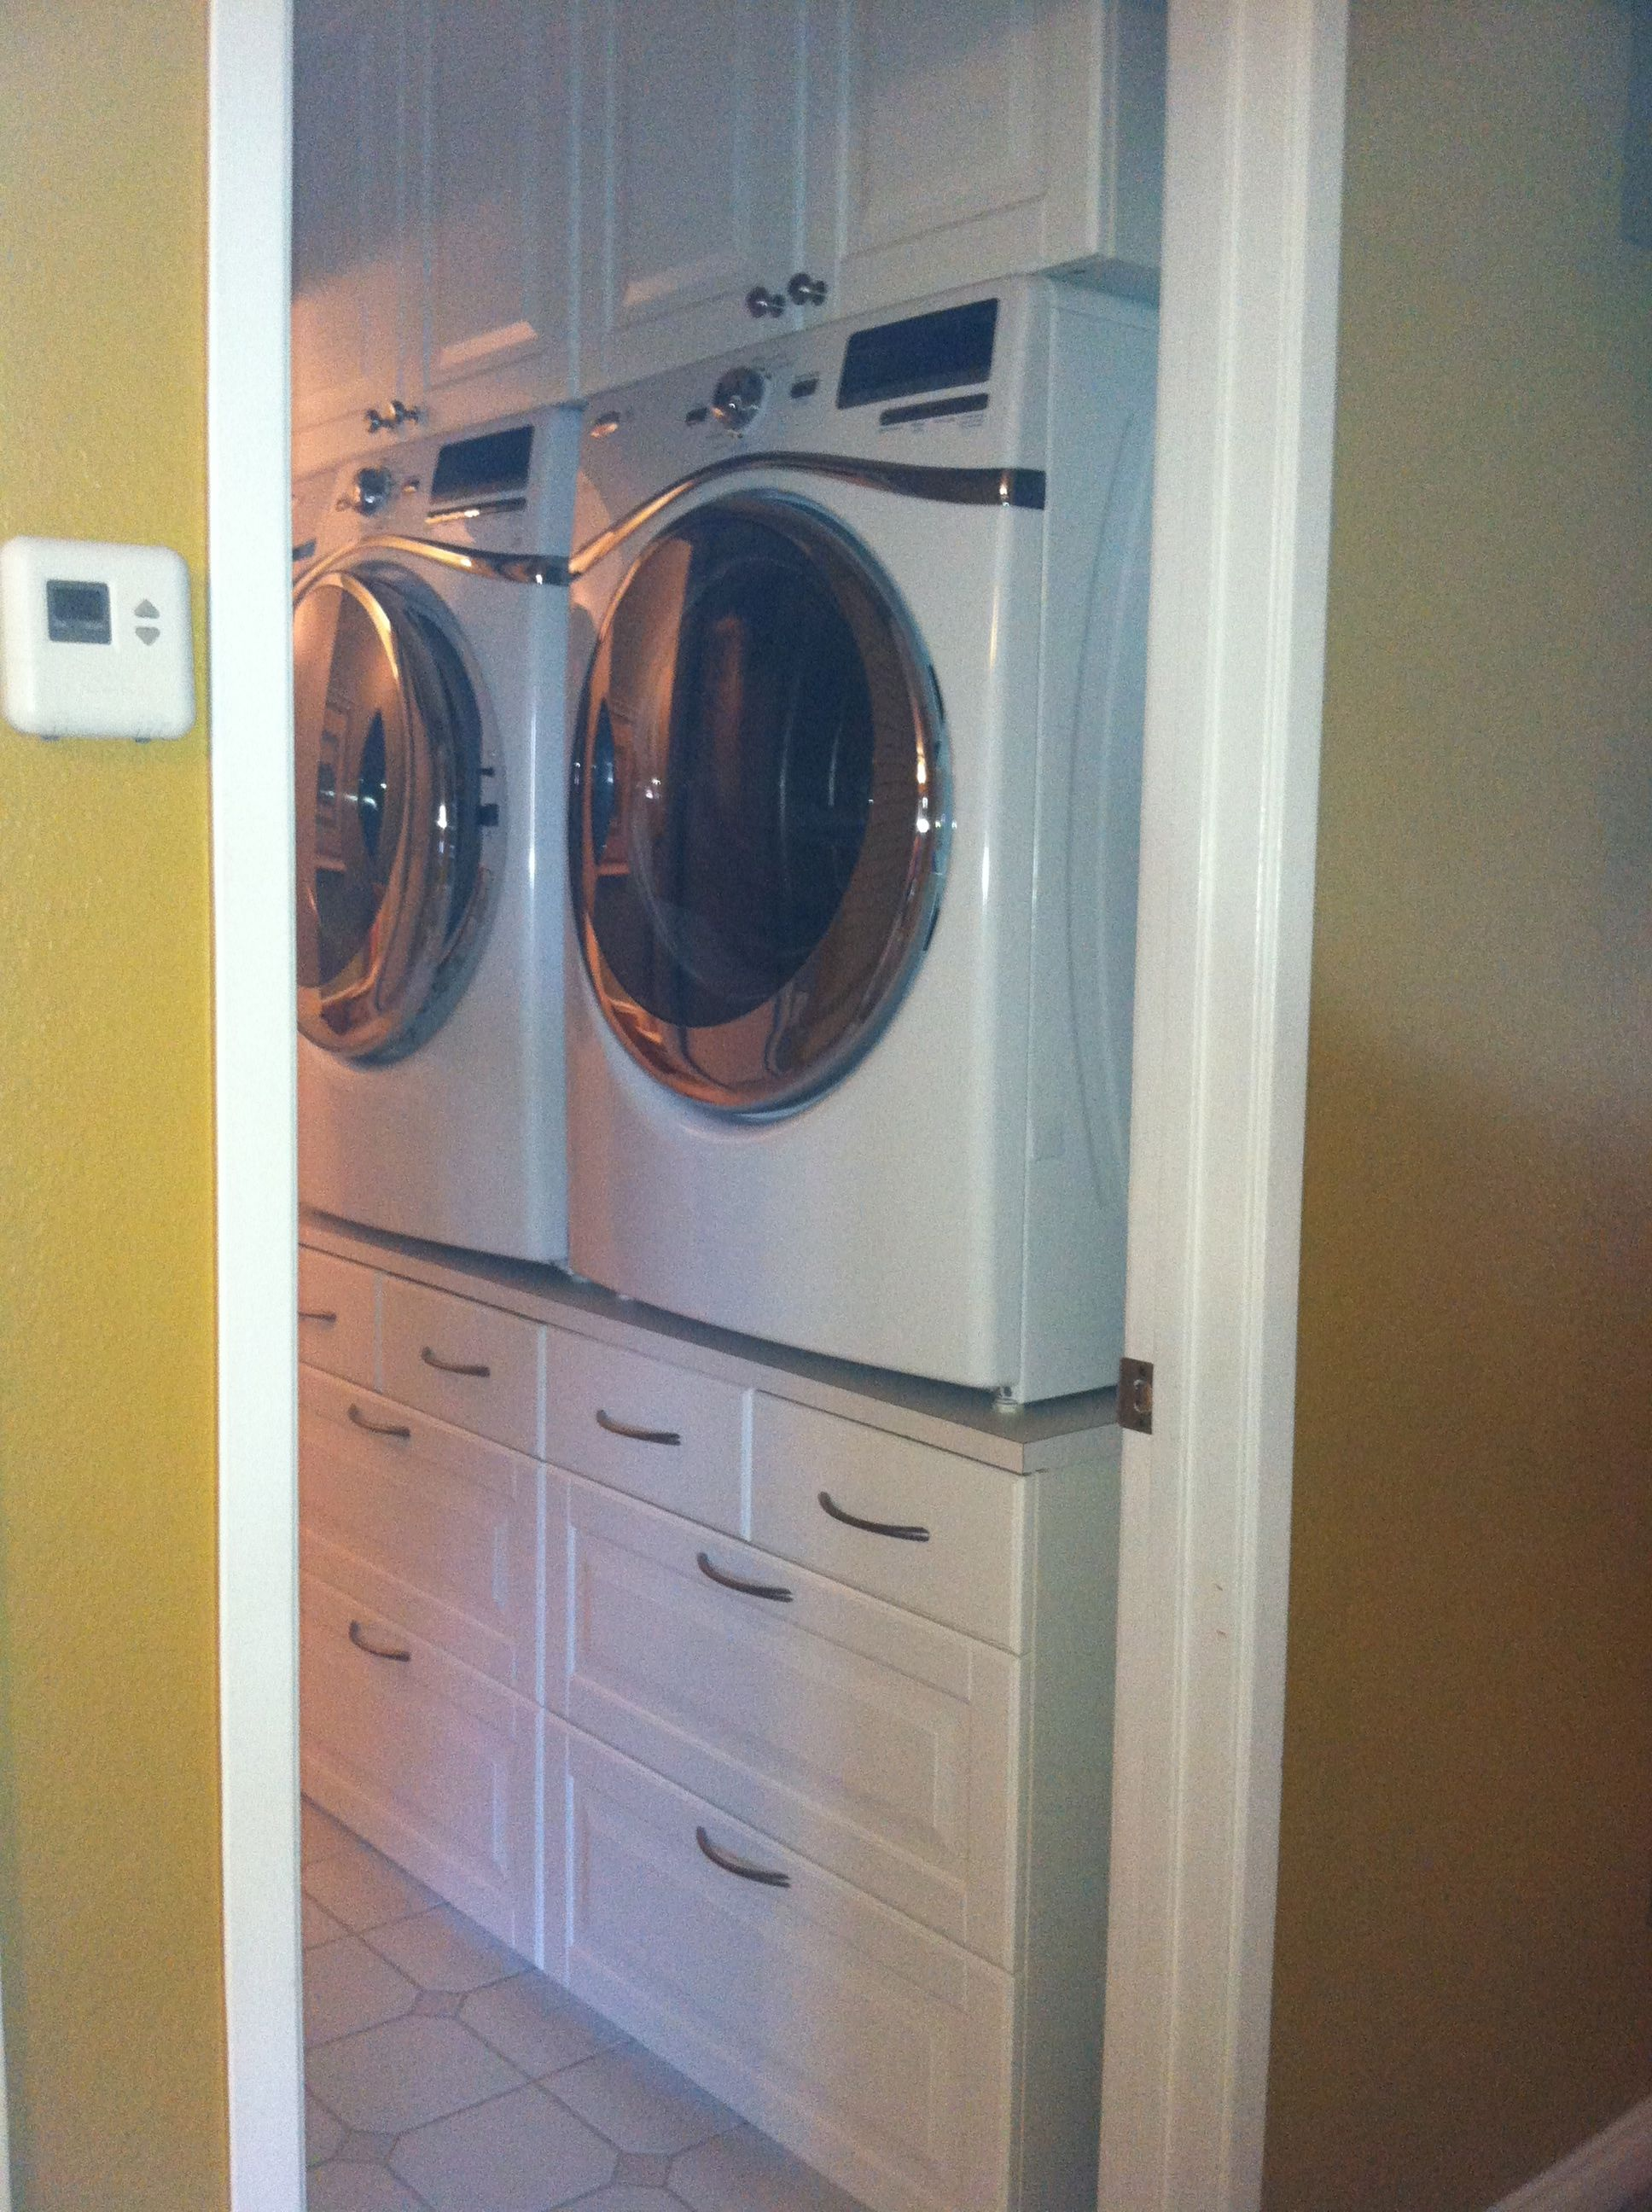 Closet Washer Dryer Design Ideas Pictures Remodel And Decor Washer And Dryer Stand Laundry Room Design Laundry Mud Room